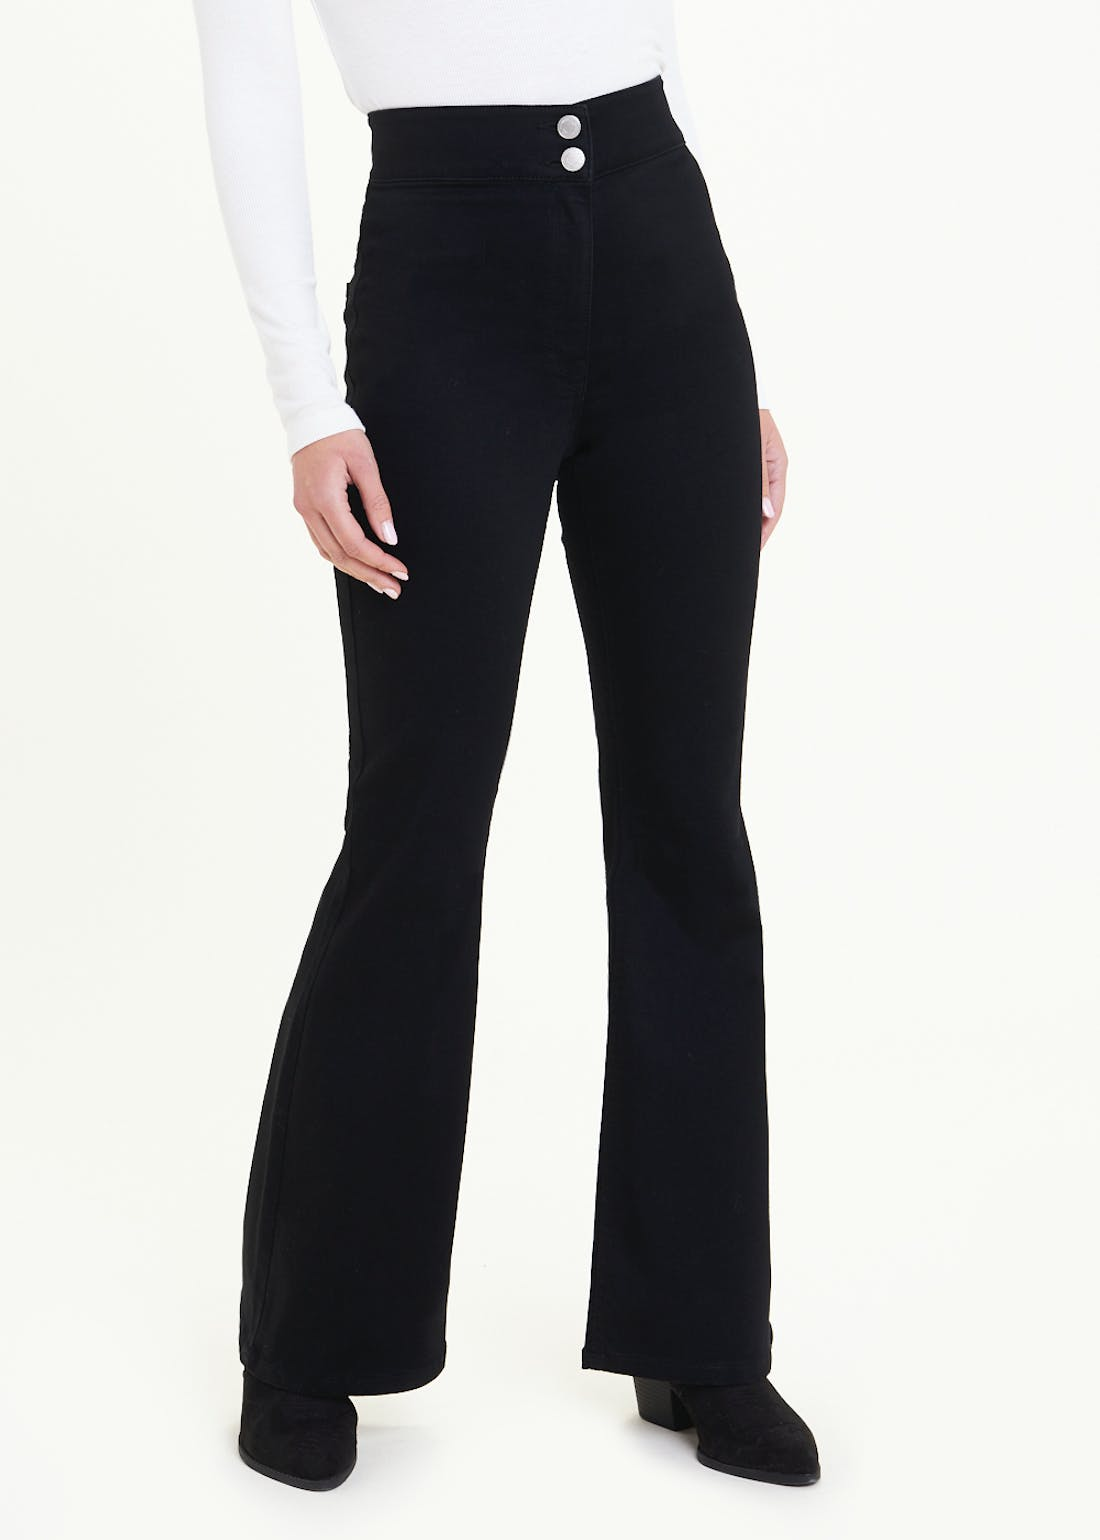 Jessie High Waisted Flared Jeans